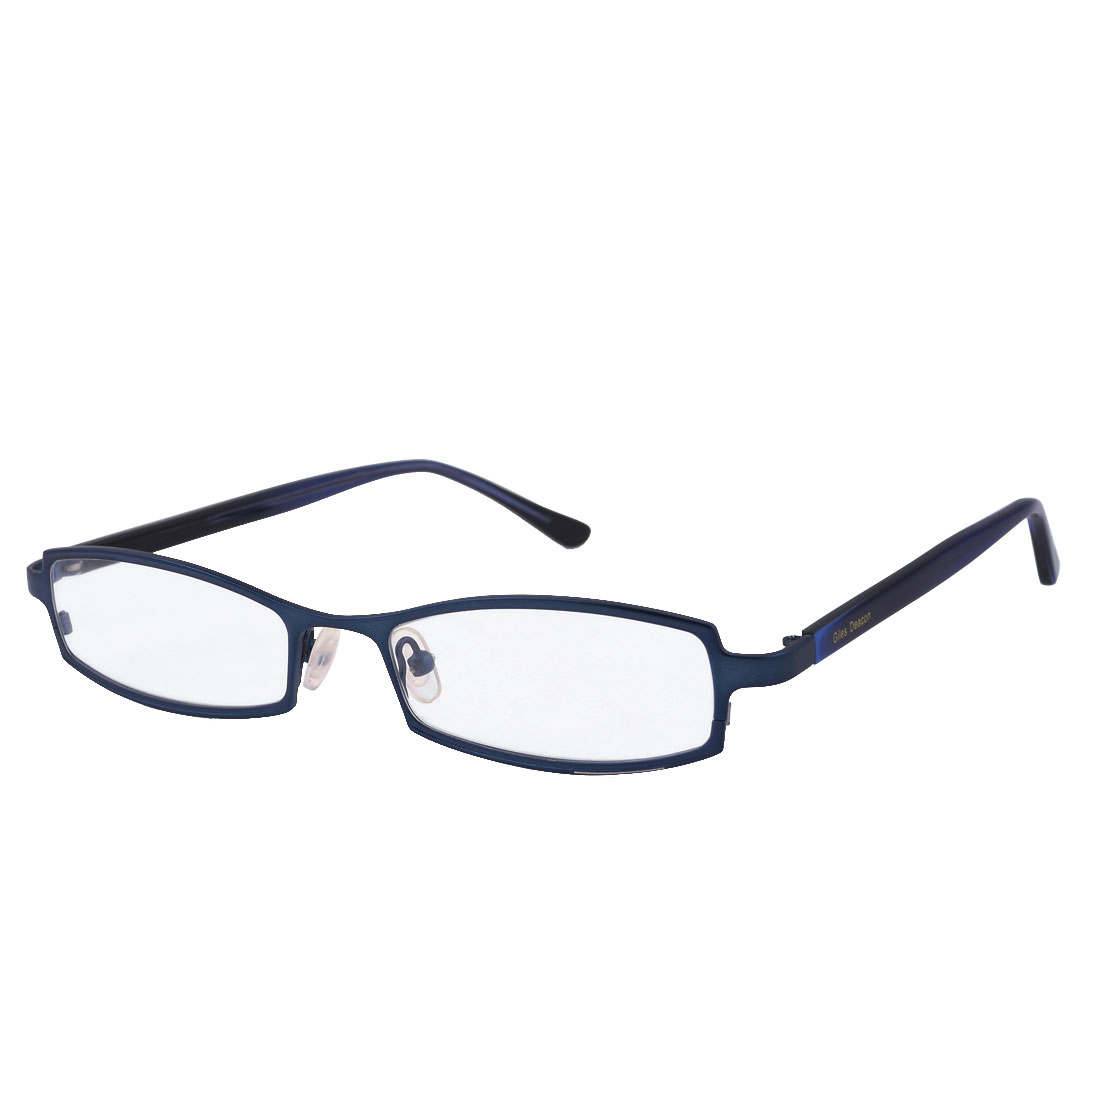 Rectangle Lens Single Bridge Plain Glasses Eyeglasses Dark Blue for Lady Man